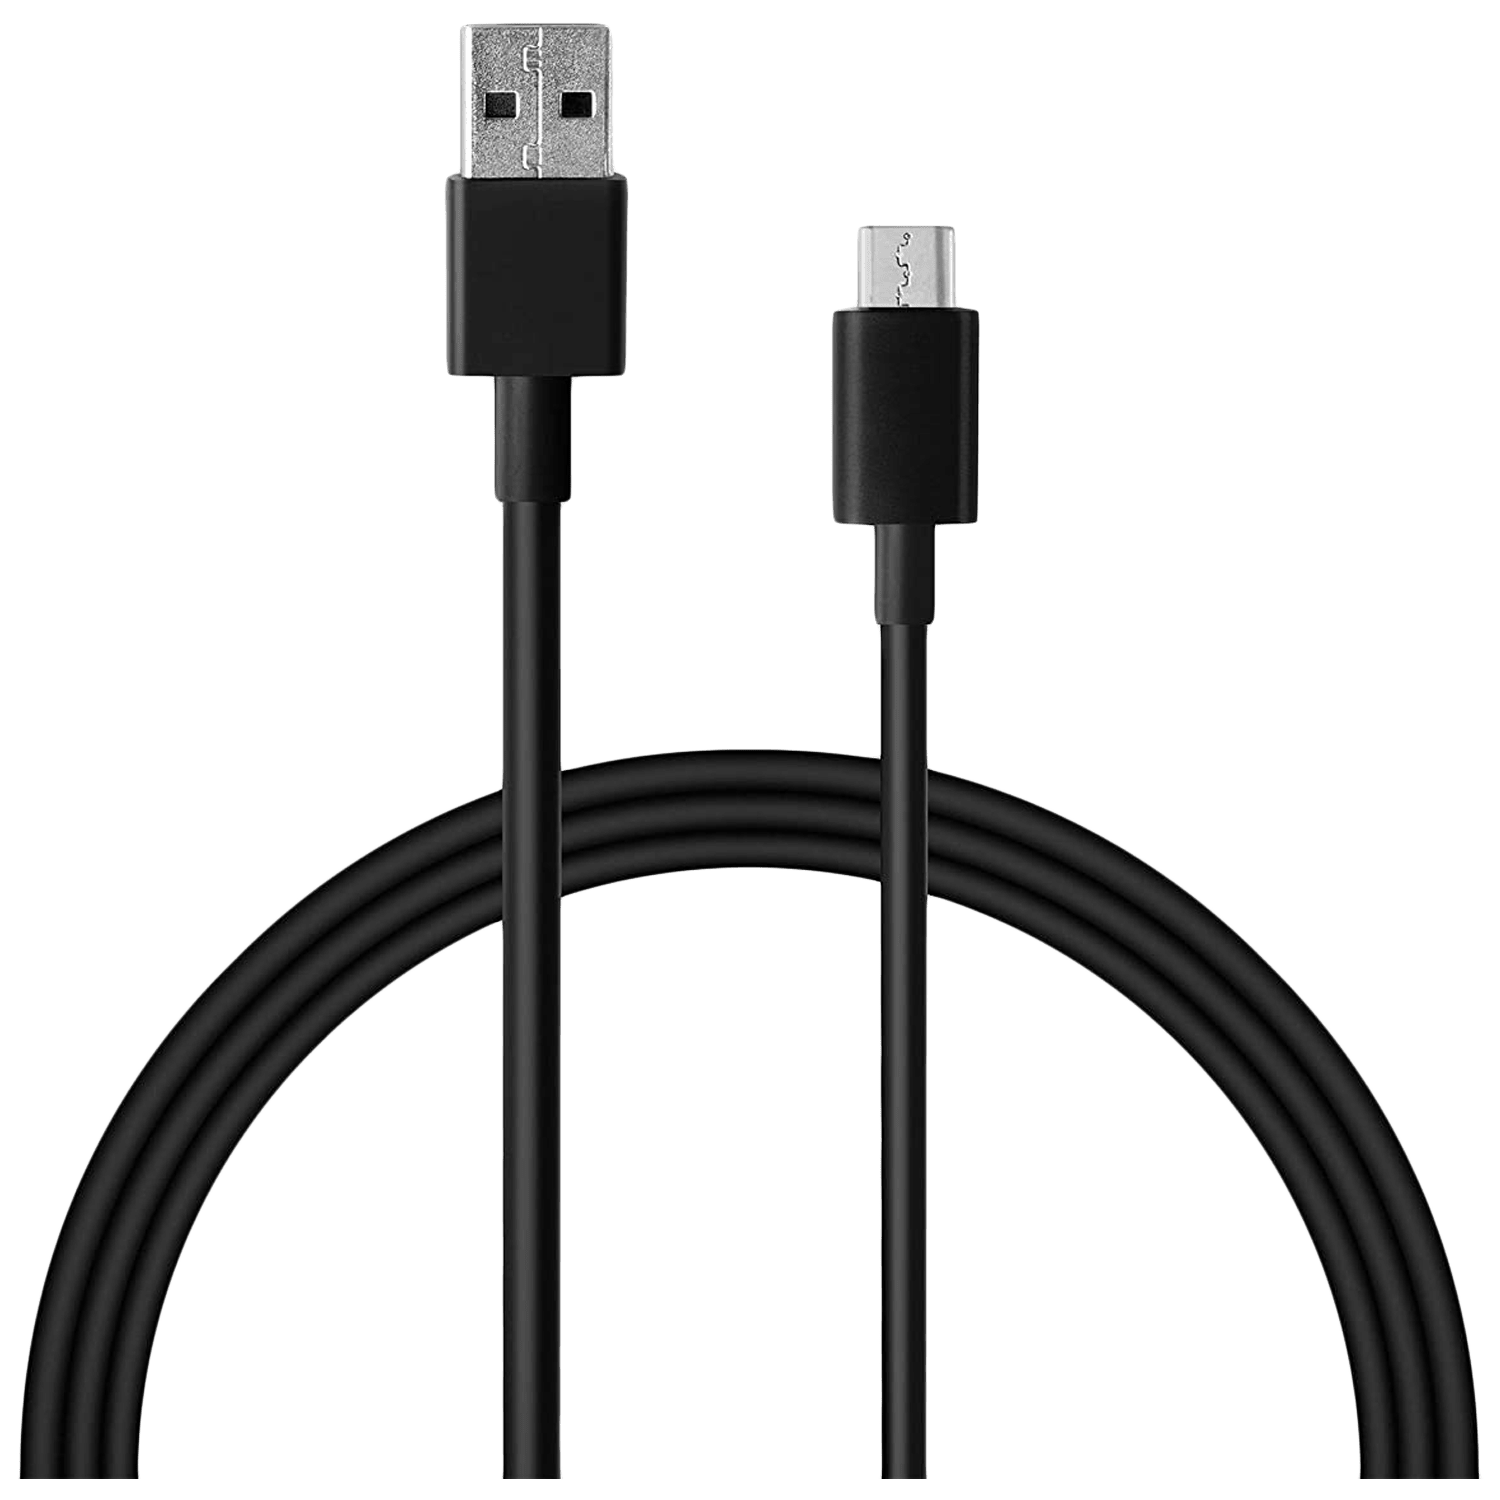 Xiaomi Mi 1 Meter USB 2.0 (Type-A) to USB 3.0 (Type-C) Power/Charging USB Cable (Fast Charging Compatible, BHR4221IN, Black)